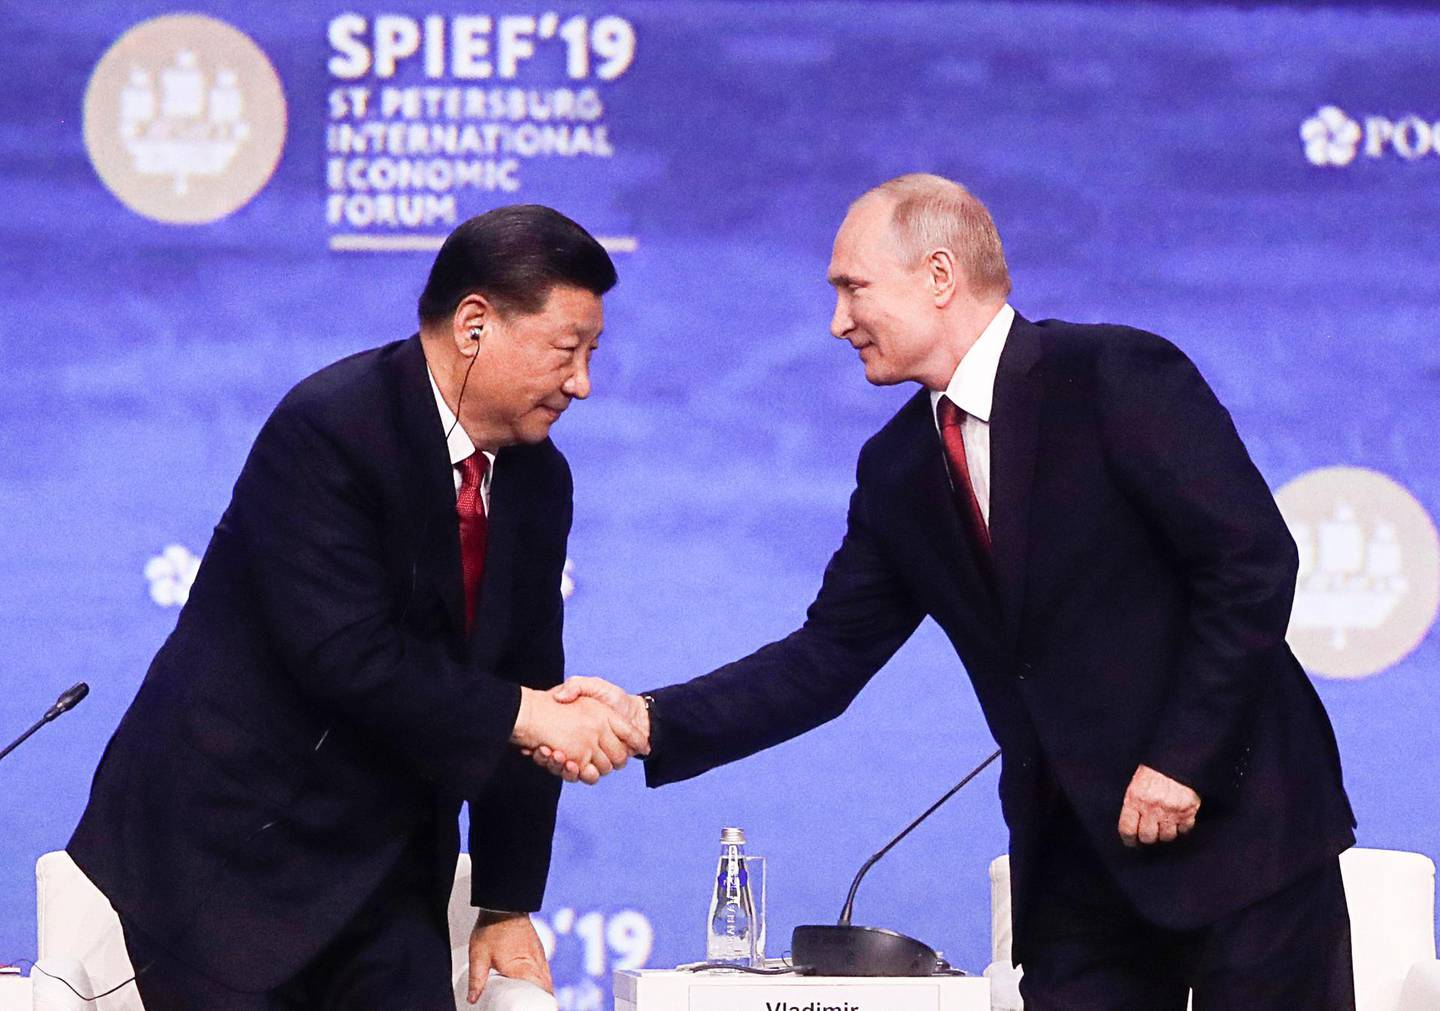 Russian President Vladimir Putin, right, shakes hands with Chinese President Xi Jinping at the St. Petersburg International Economic Forum in St. Petersburg, Russia, Friday, June 7, 2019. (Mikhail Metzel/TASS News Agency Pool Photo via AP)